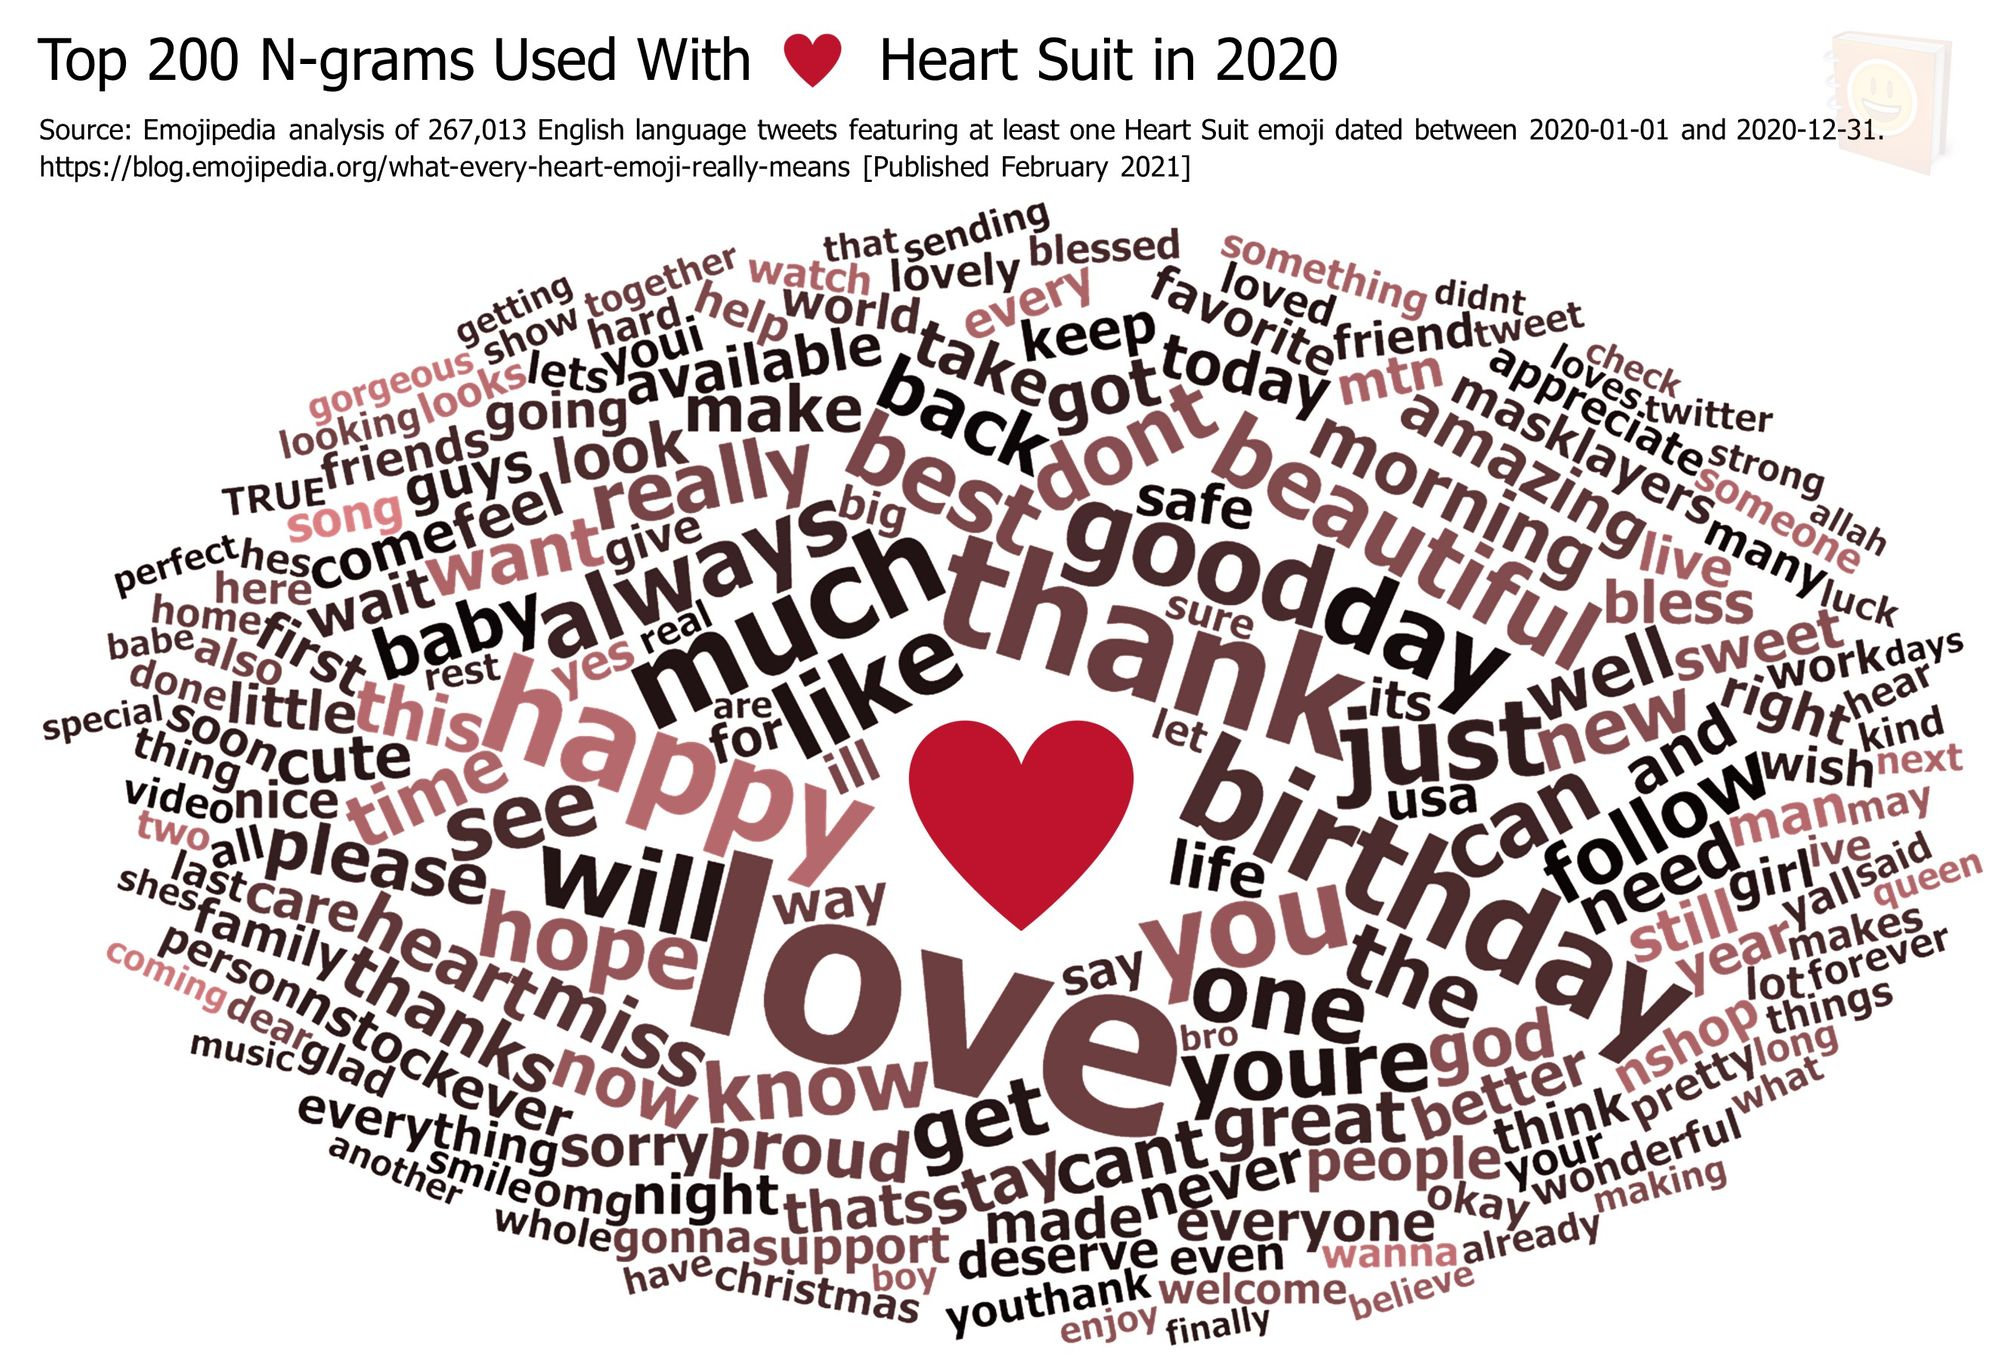 Emojipedia-Blog---What-Every-Heart-Emoji-Really-Means---Top-200-N-grams-Used-With-------Heart-Suit-in-2020